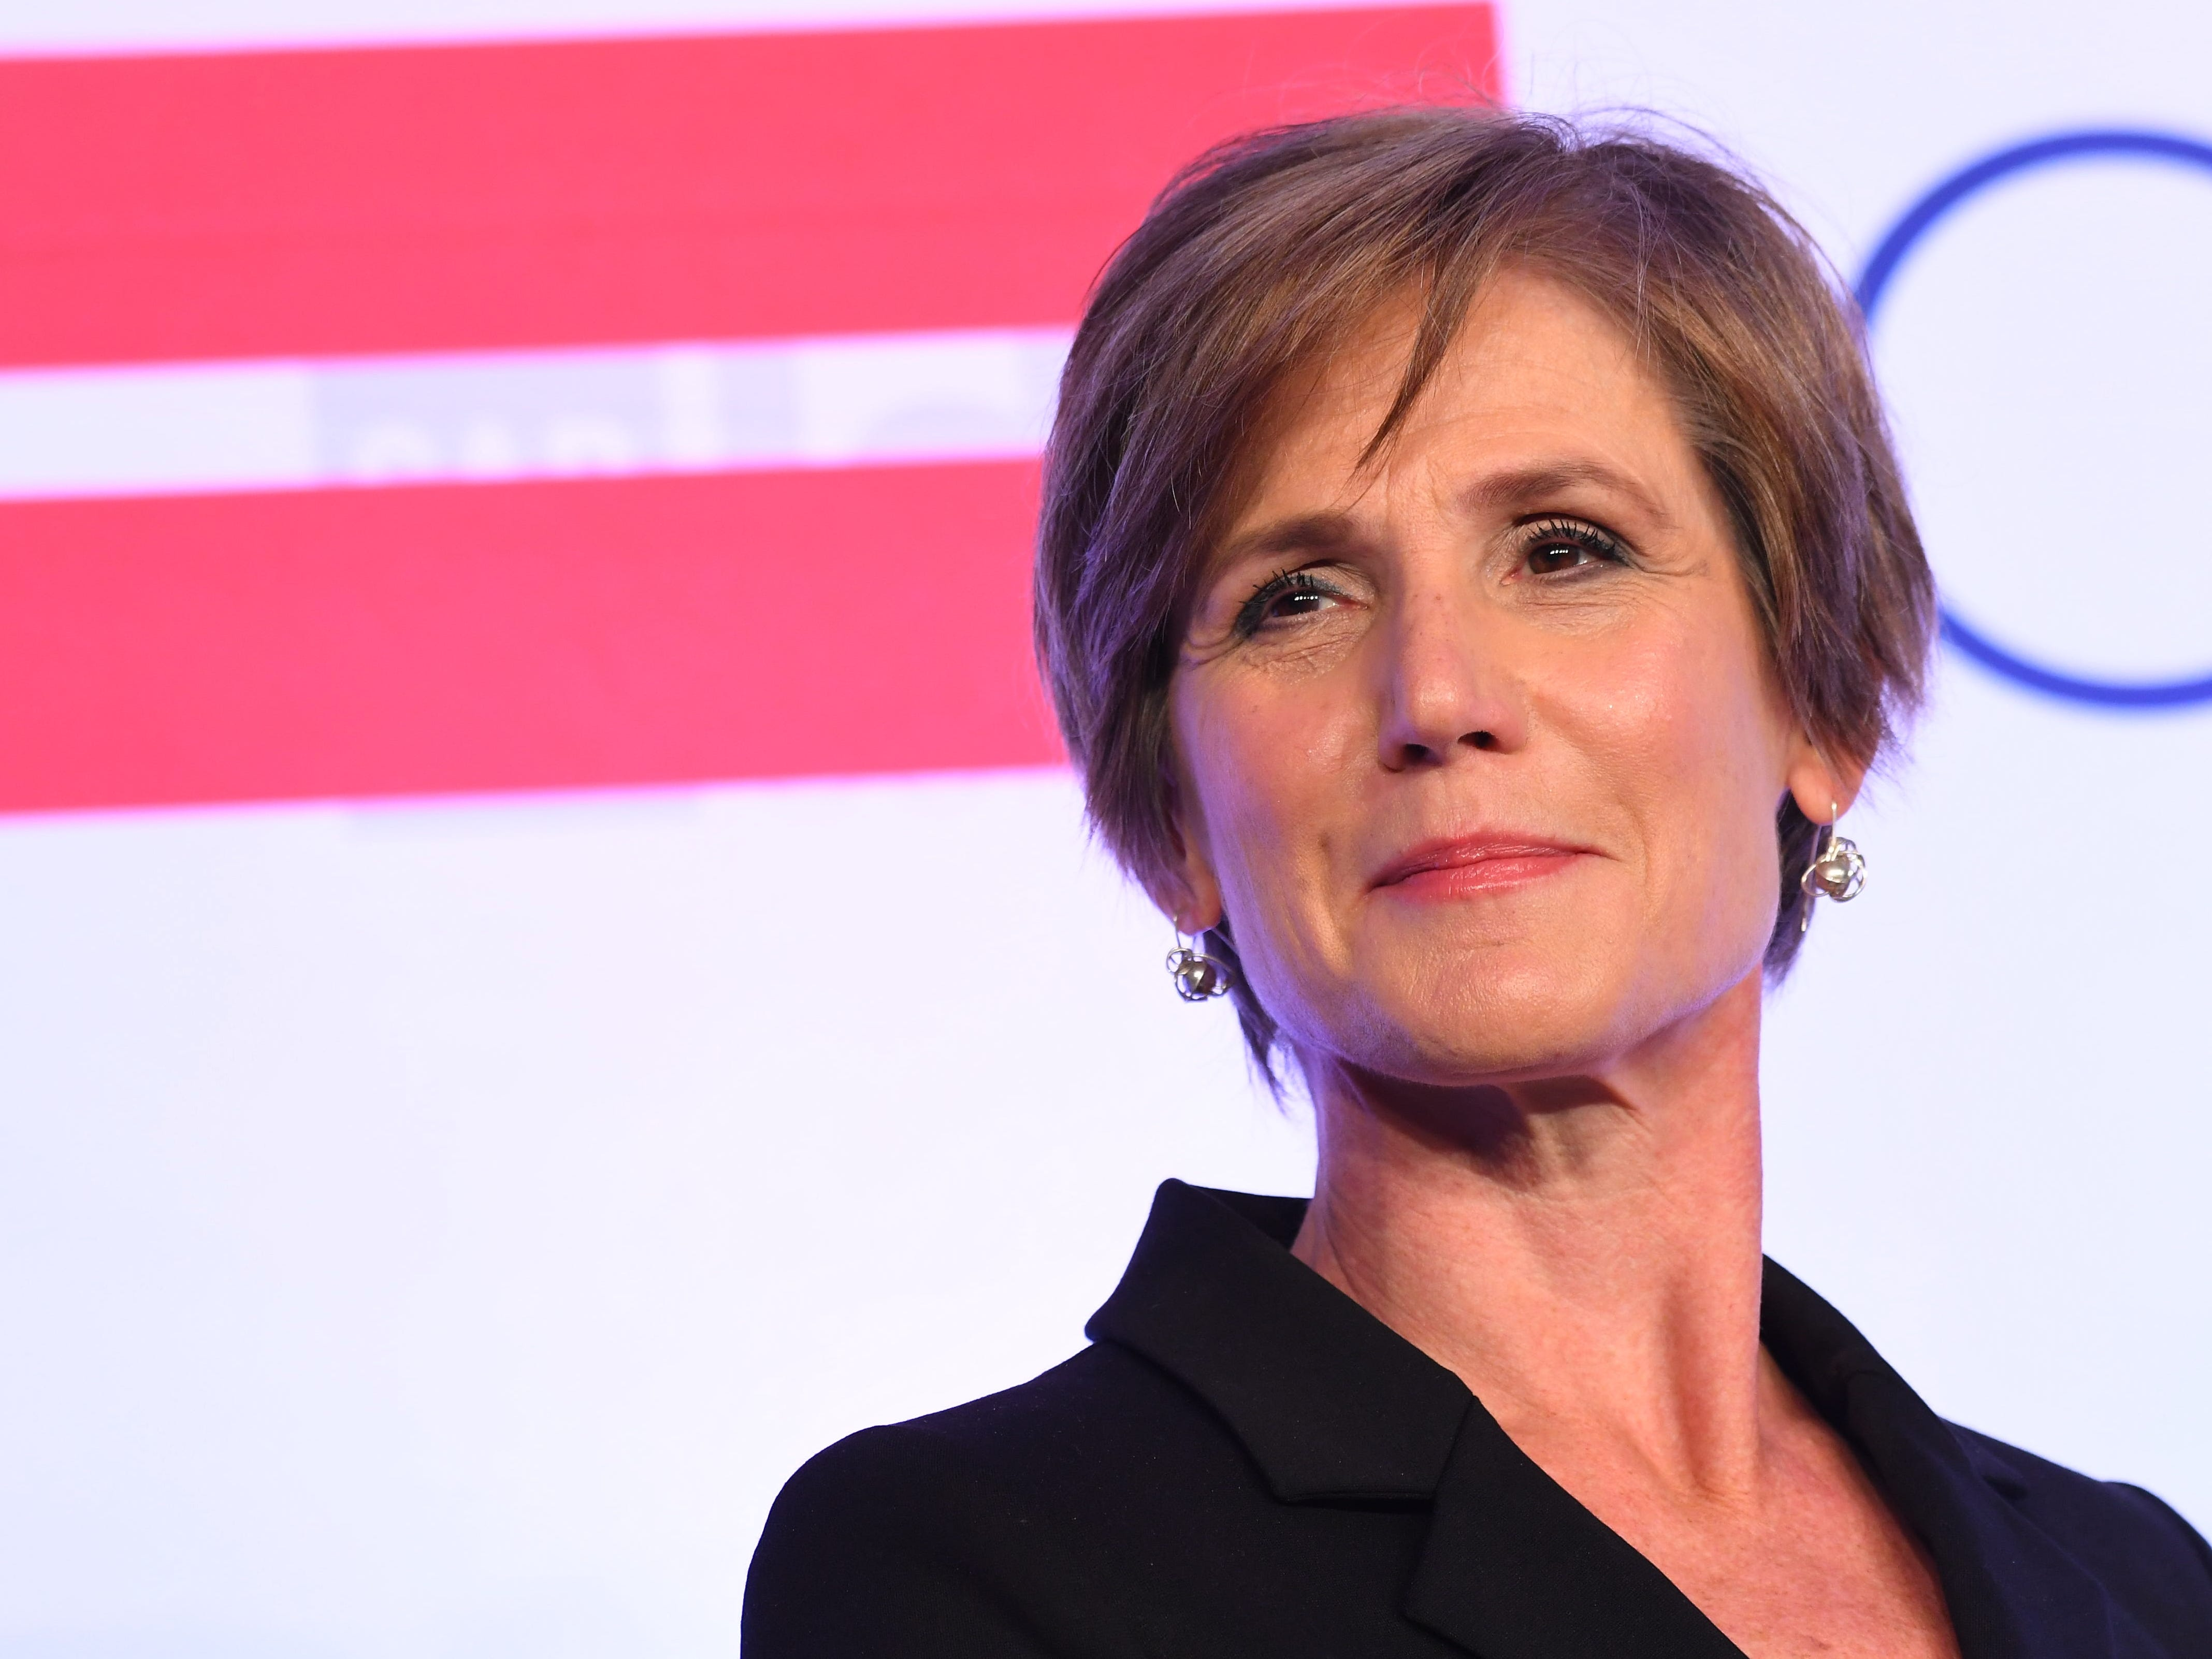 5/15/18 10:10:21 AM -- Washington, DC  -- Sally Yates, former acting U.S. Attorney General, during a session of the Center for American Progress (CAP) annual ideas conference.